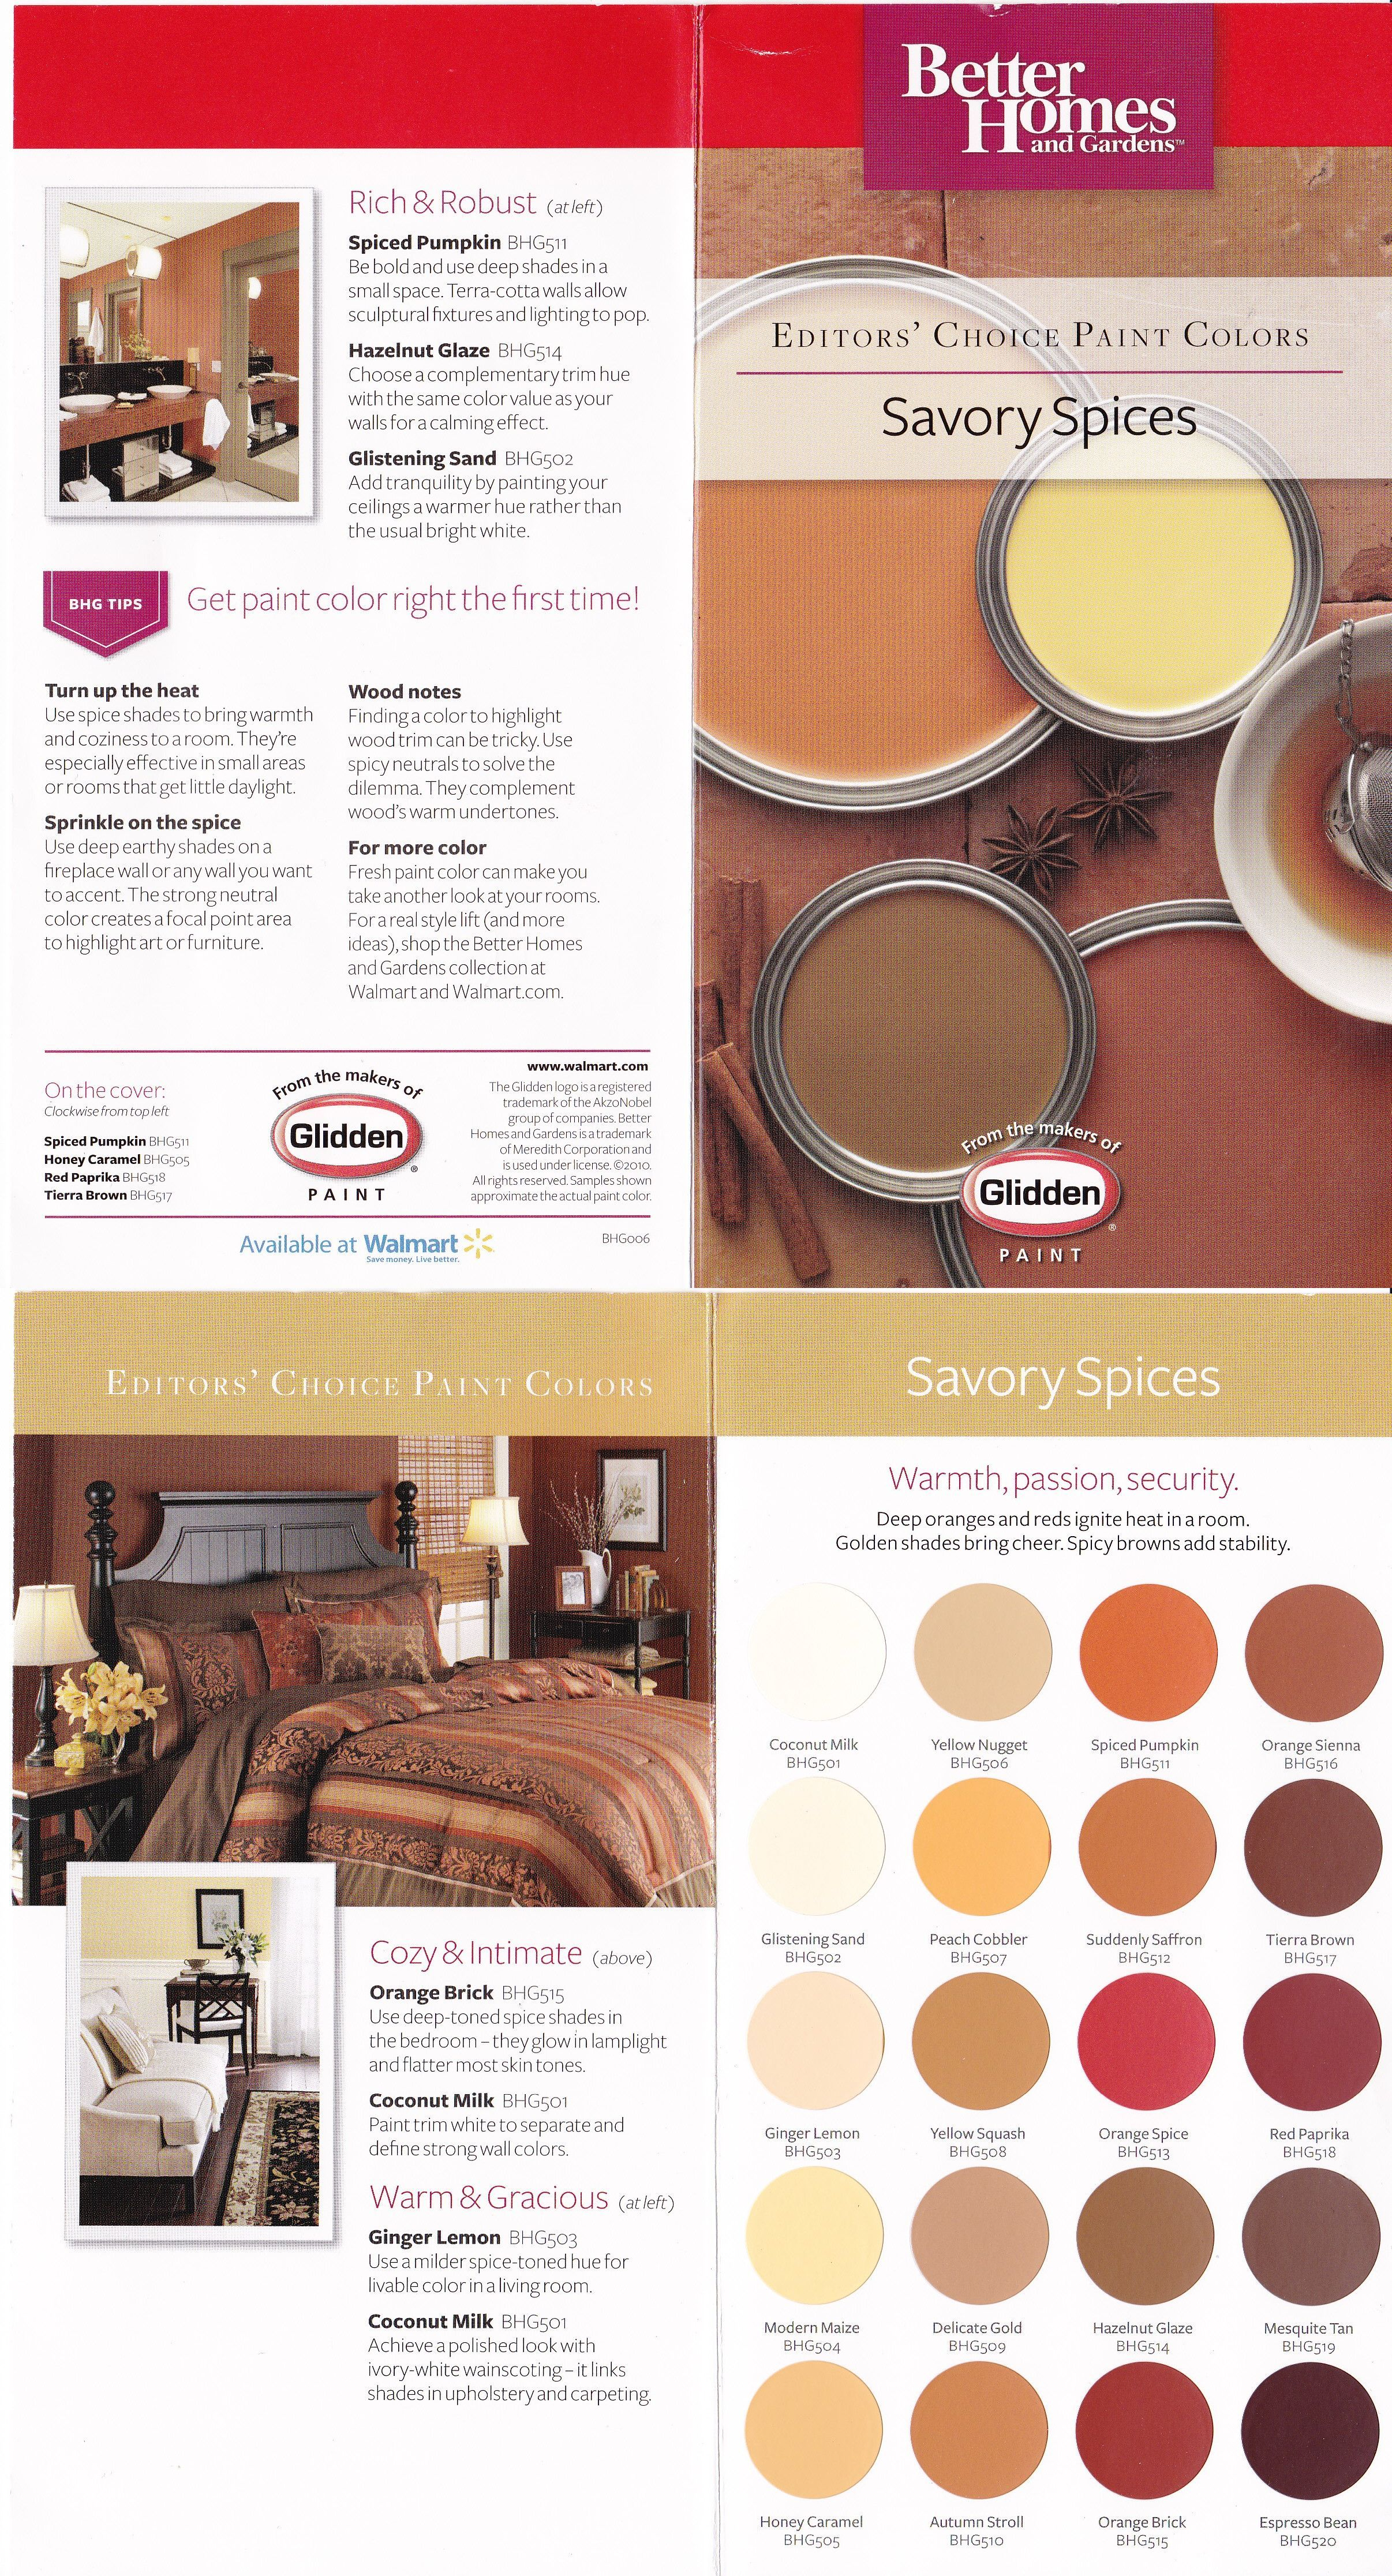 Paint Colors Savory Es Warm Earth Tones Deep Oranges And Reds Golden Shades Y Browns